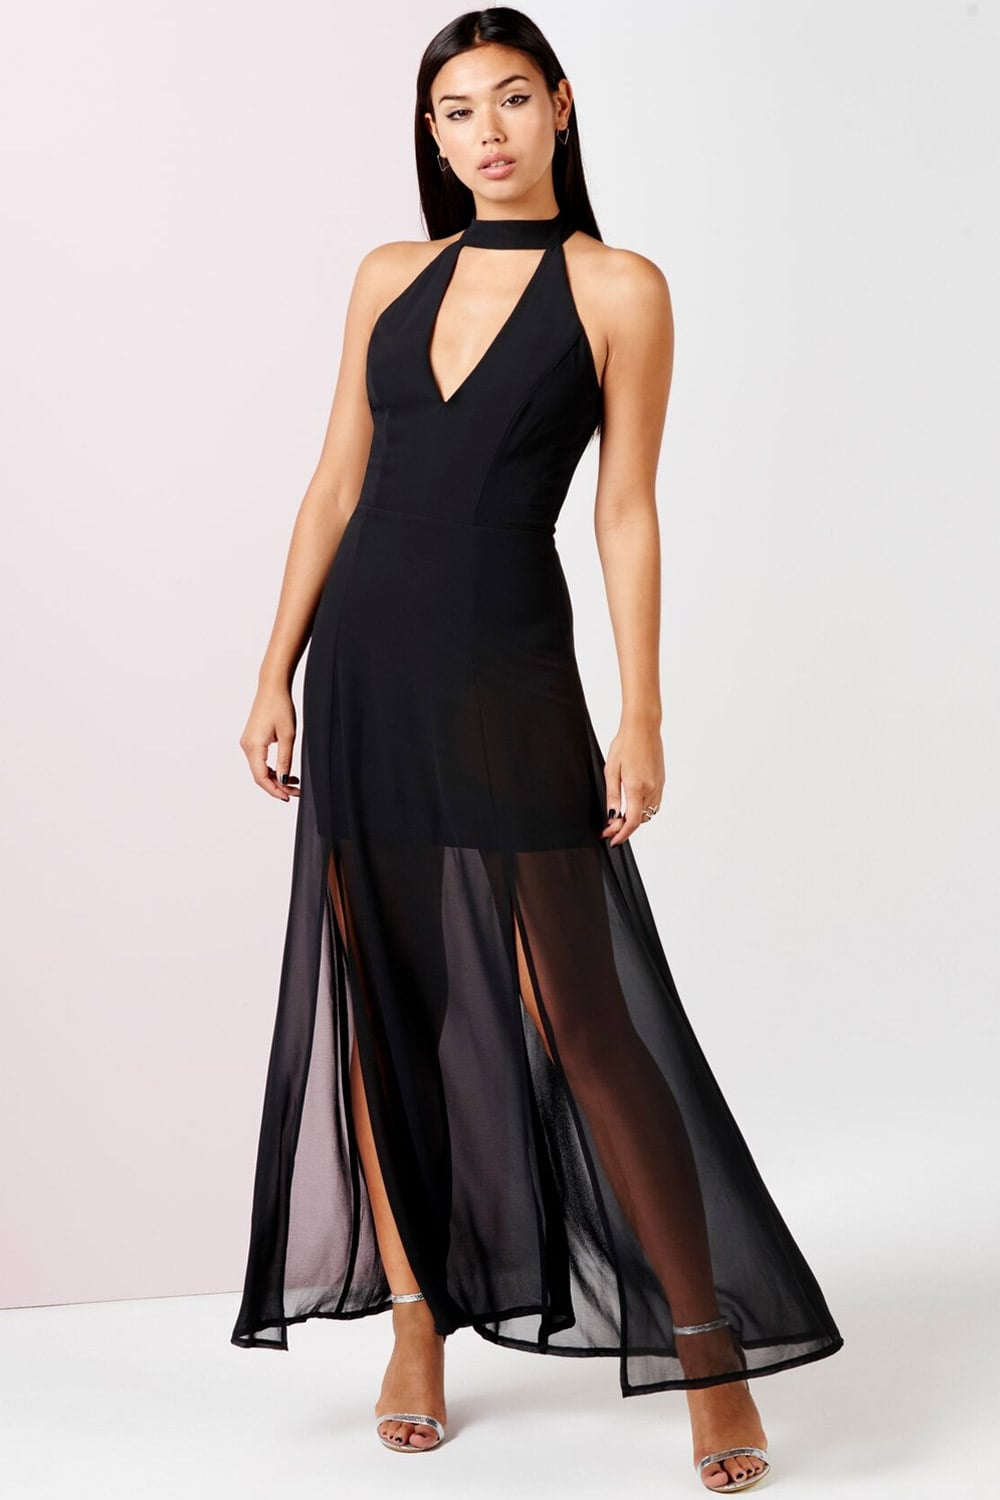 Outlet Girls On Film Black Keyhole Maxi Dress With Slits - Outlet ...